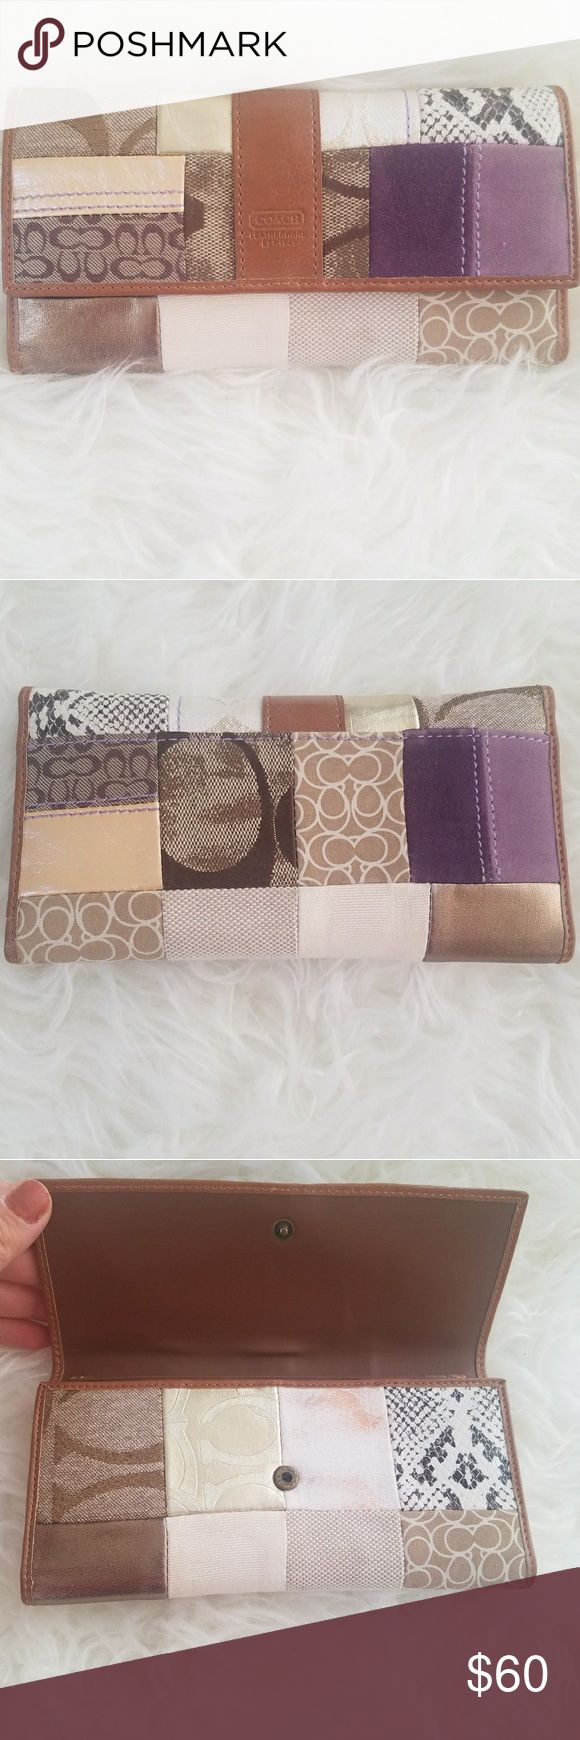 Coach Wallet Leatherwear est. 1941 patchwork Coach Wallet Leatherwear est. 1941 patchwork. New without tag. Coach Bags Wallets